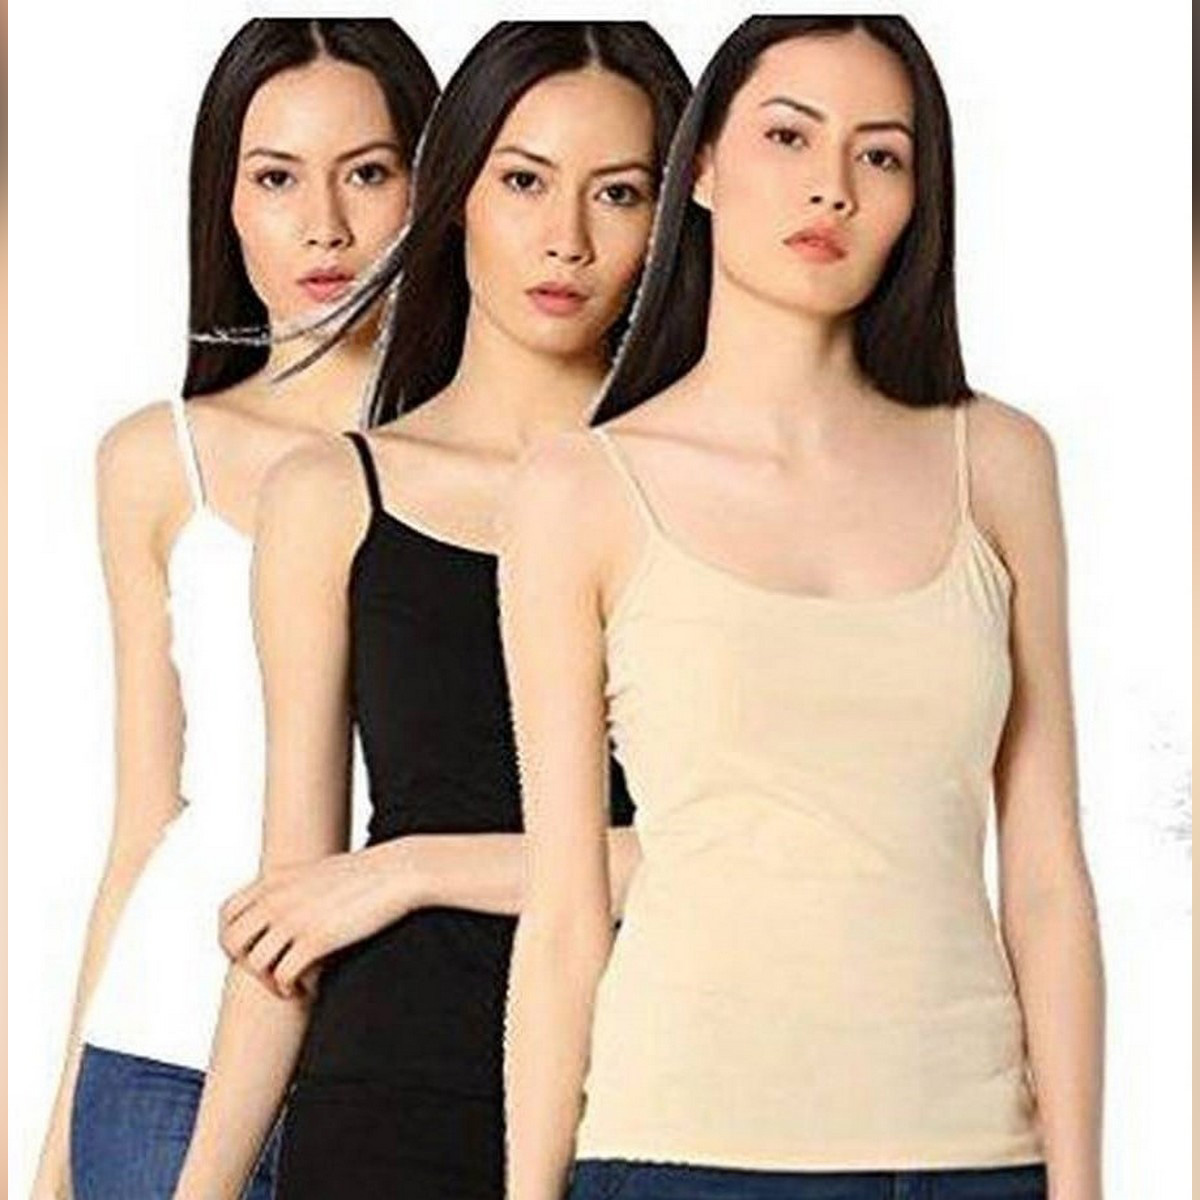 Pack of 3 Camisole For Women Girls  Biddies Strechable pure cotton Tank Tops for Women Girls